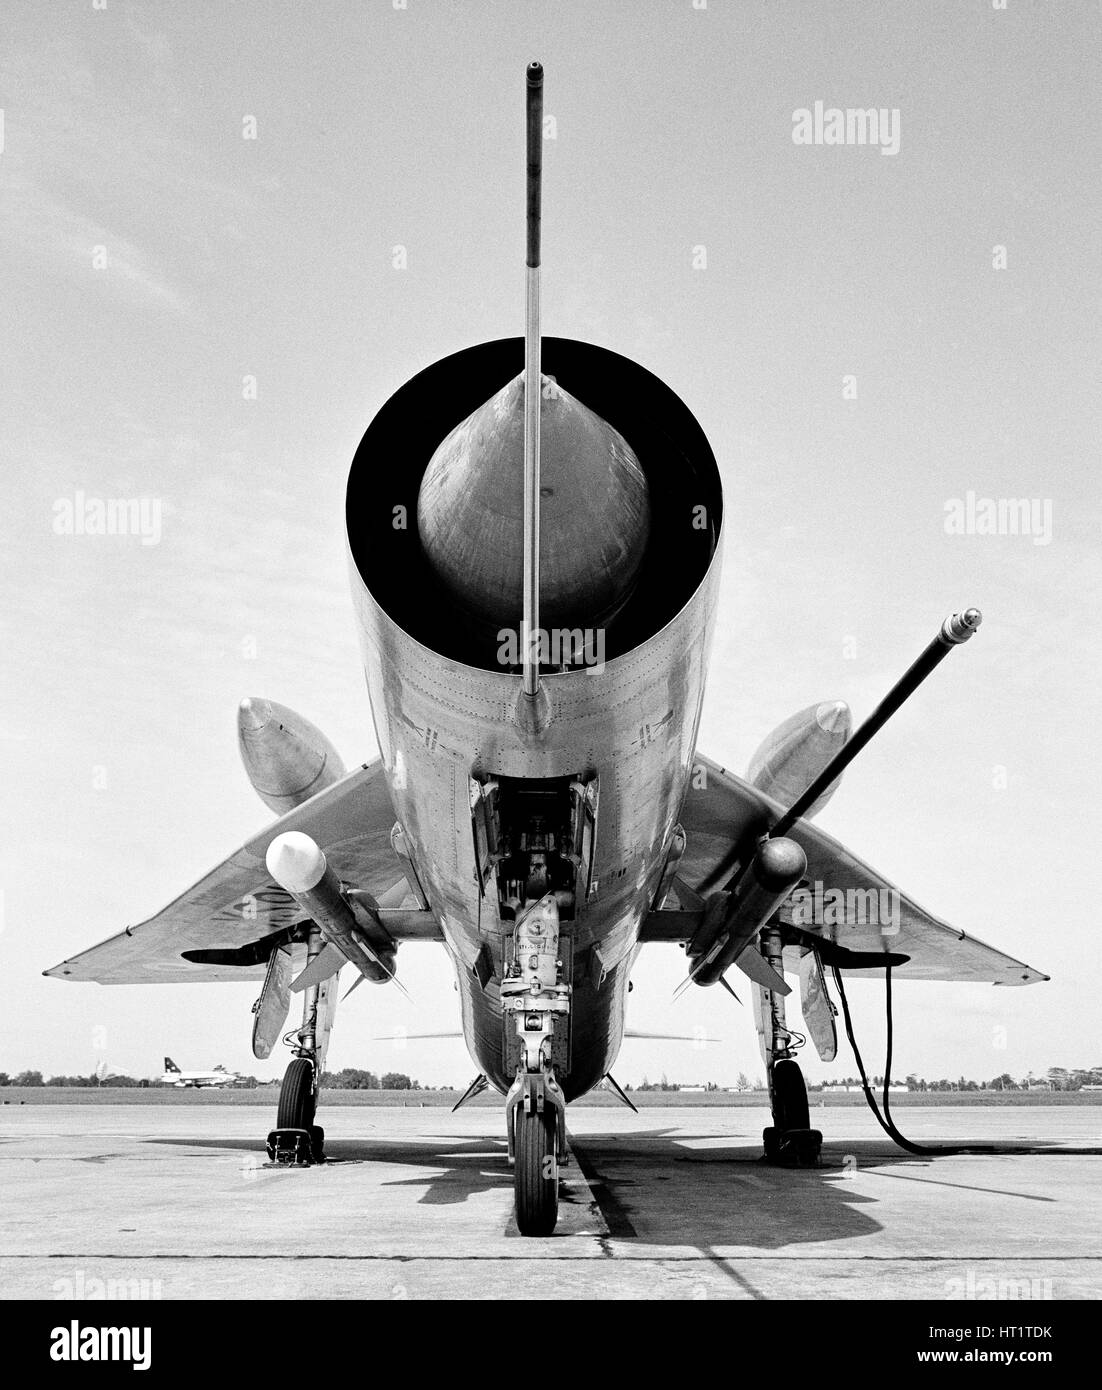 English Electric Lightning F6 Fighter/Interceptor aircraft, complete with overwing fuel tanks. - Stock Image